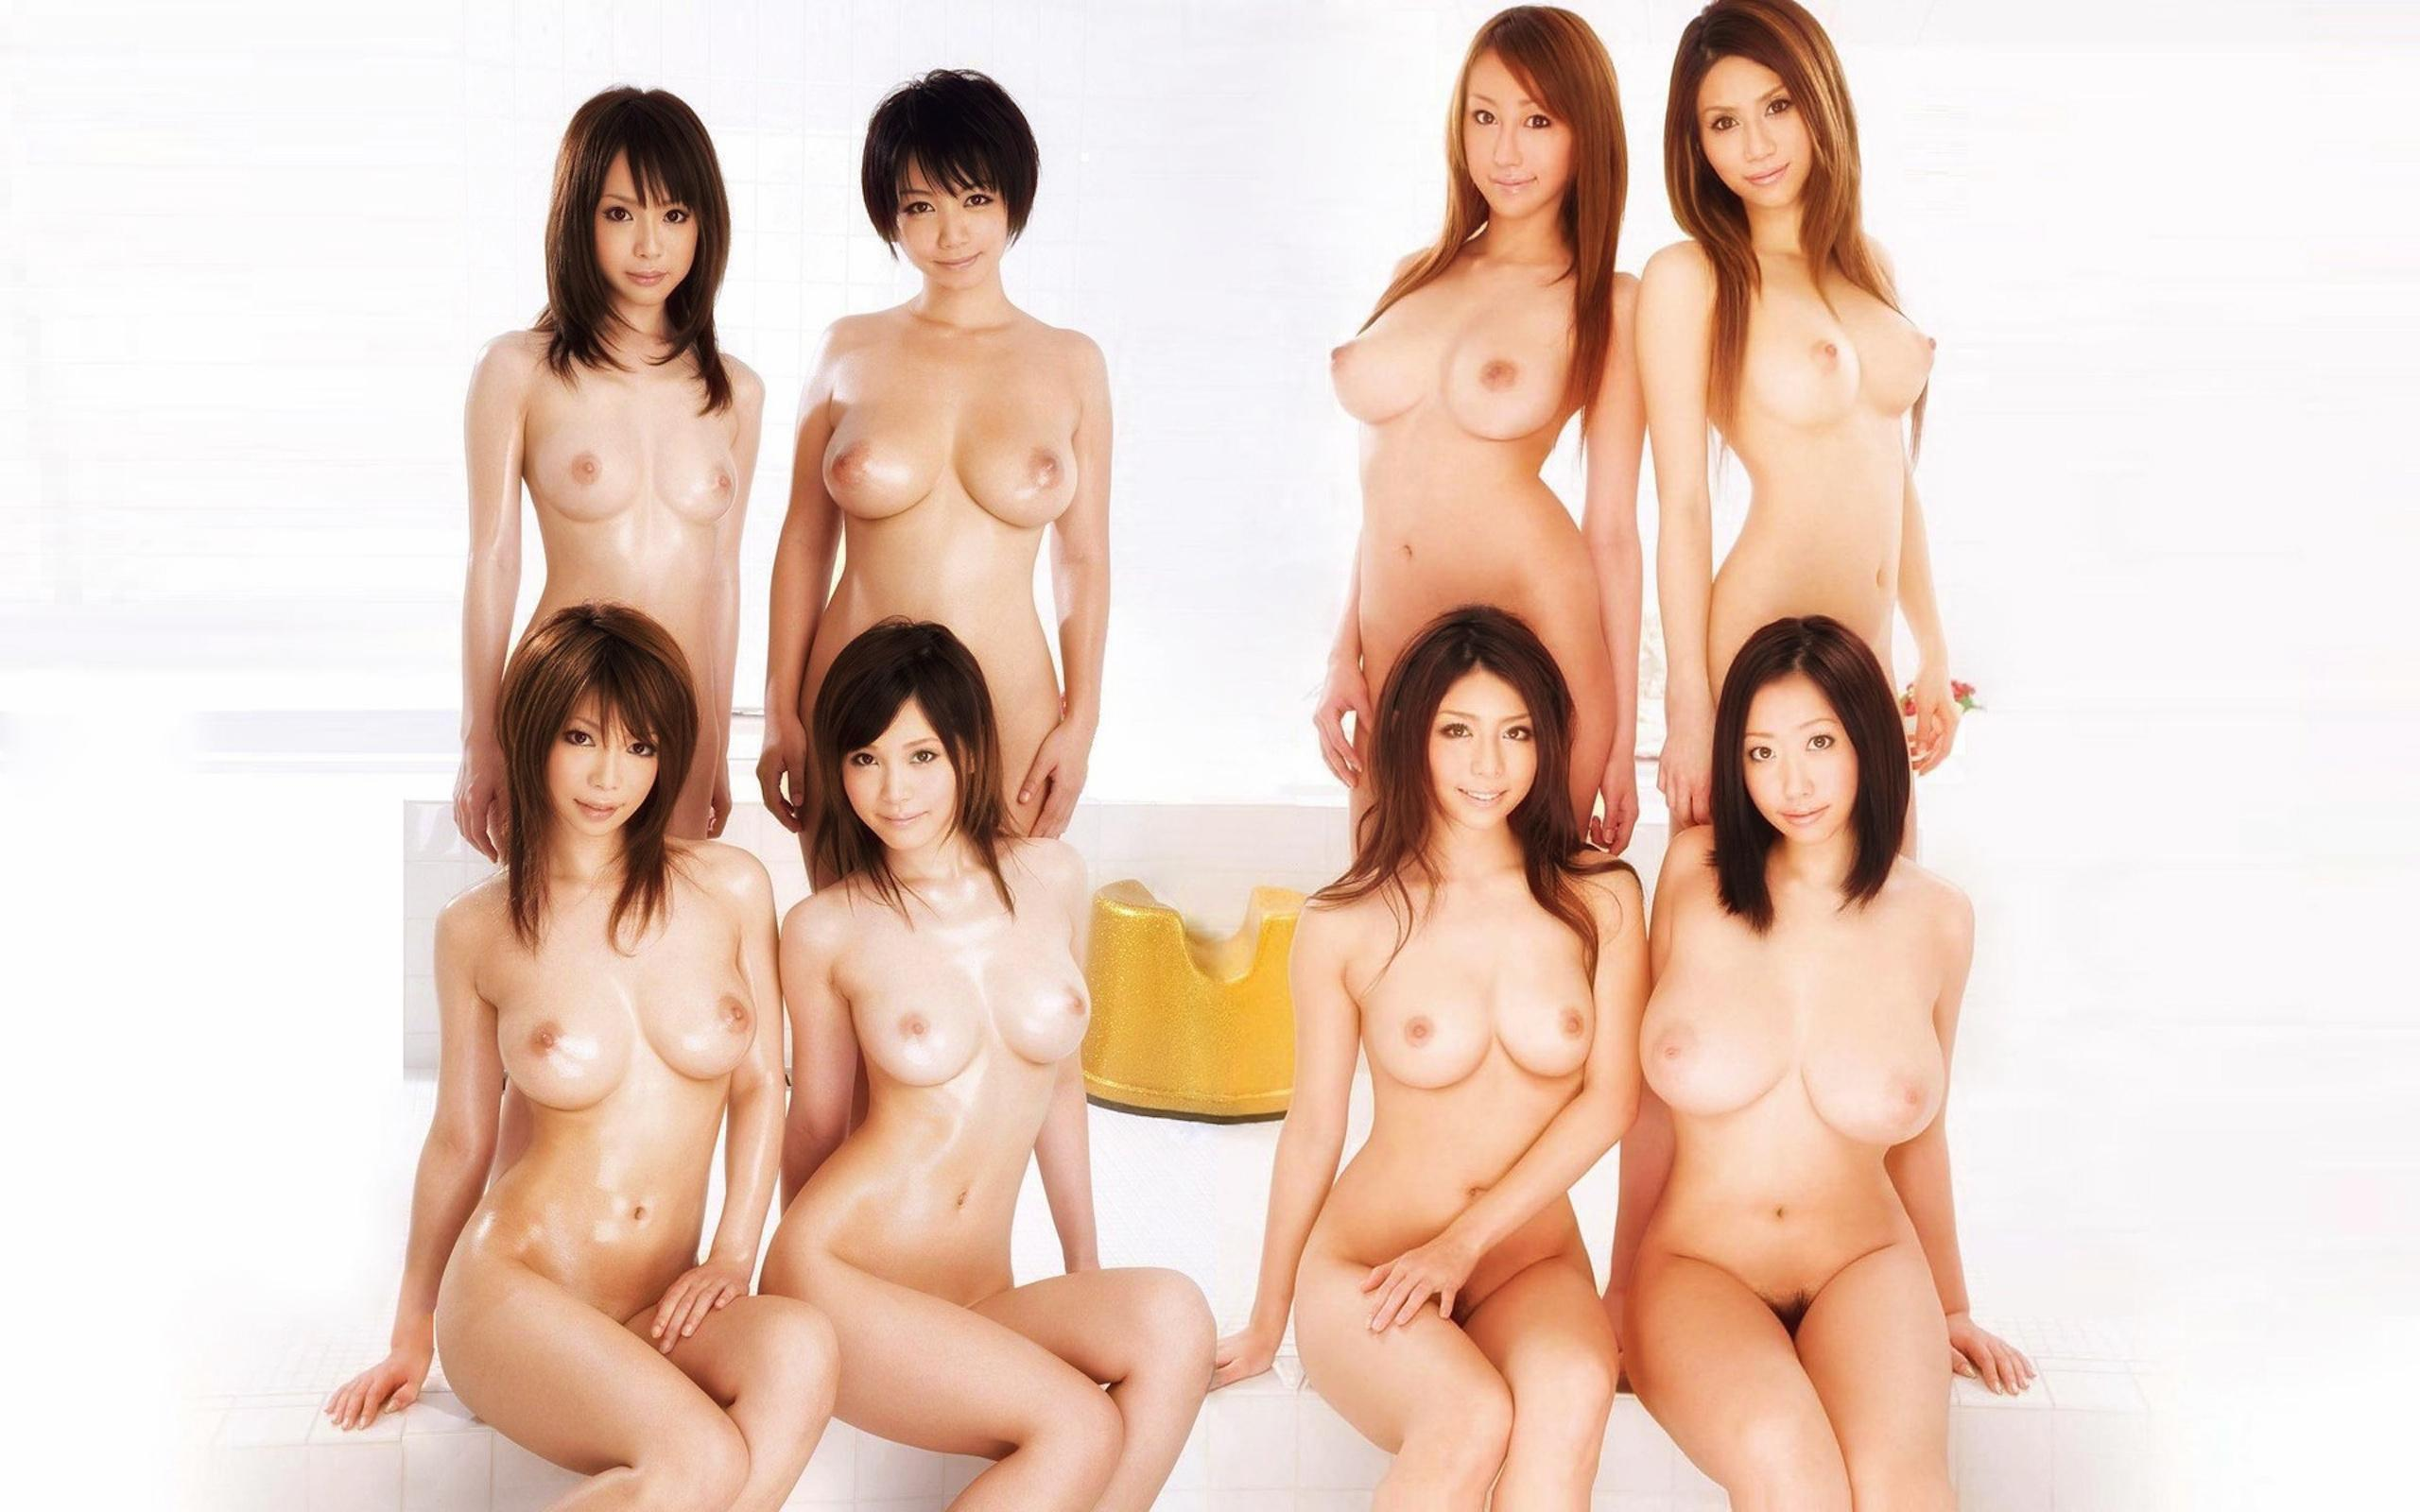 vein-group-of-nude-korean-girls